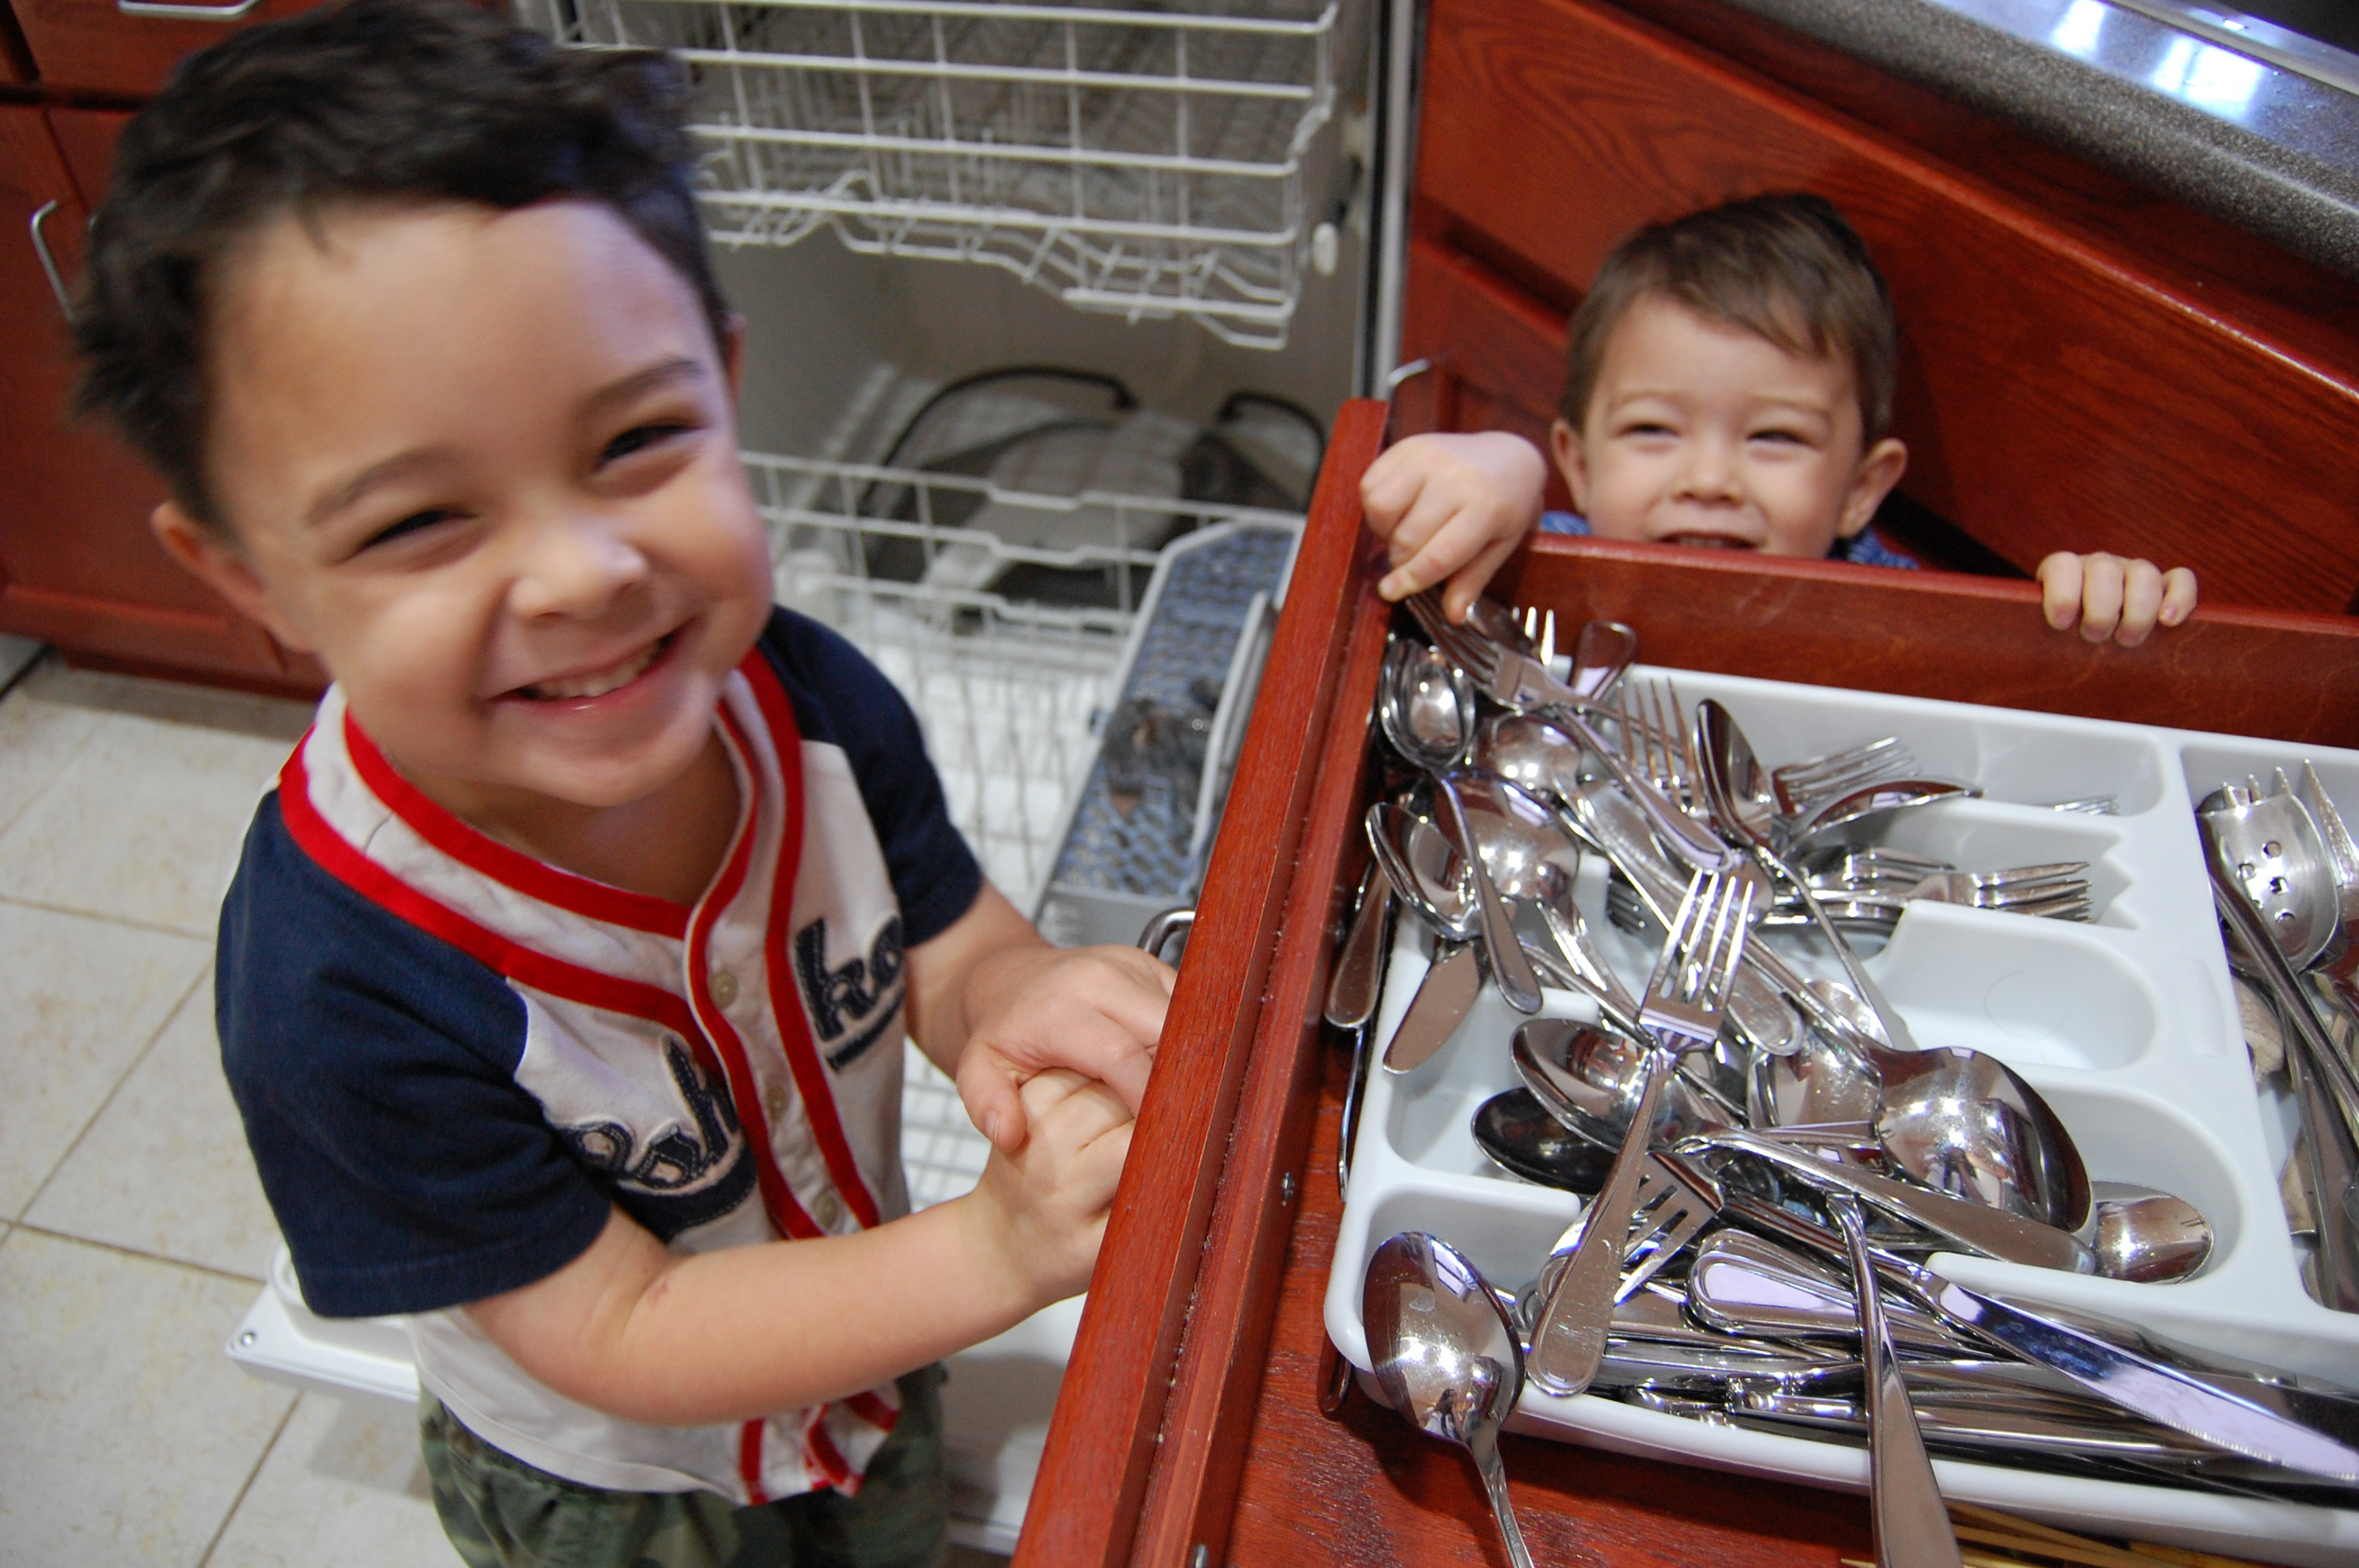 2011 - Abraham (4) and Noah (2) help by putting away the utensils and dishes from the dishwasher. It's a little messy, but at least they're in the correct general area! :) They love helping, and that's the way we like it.